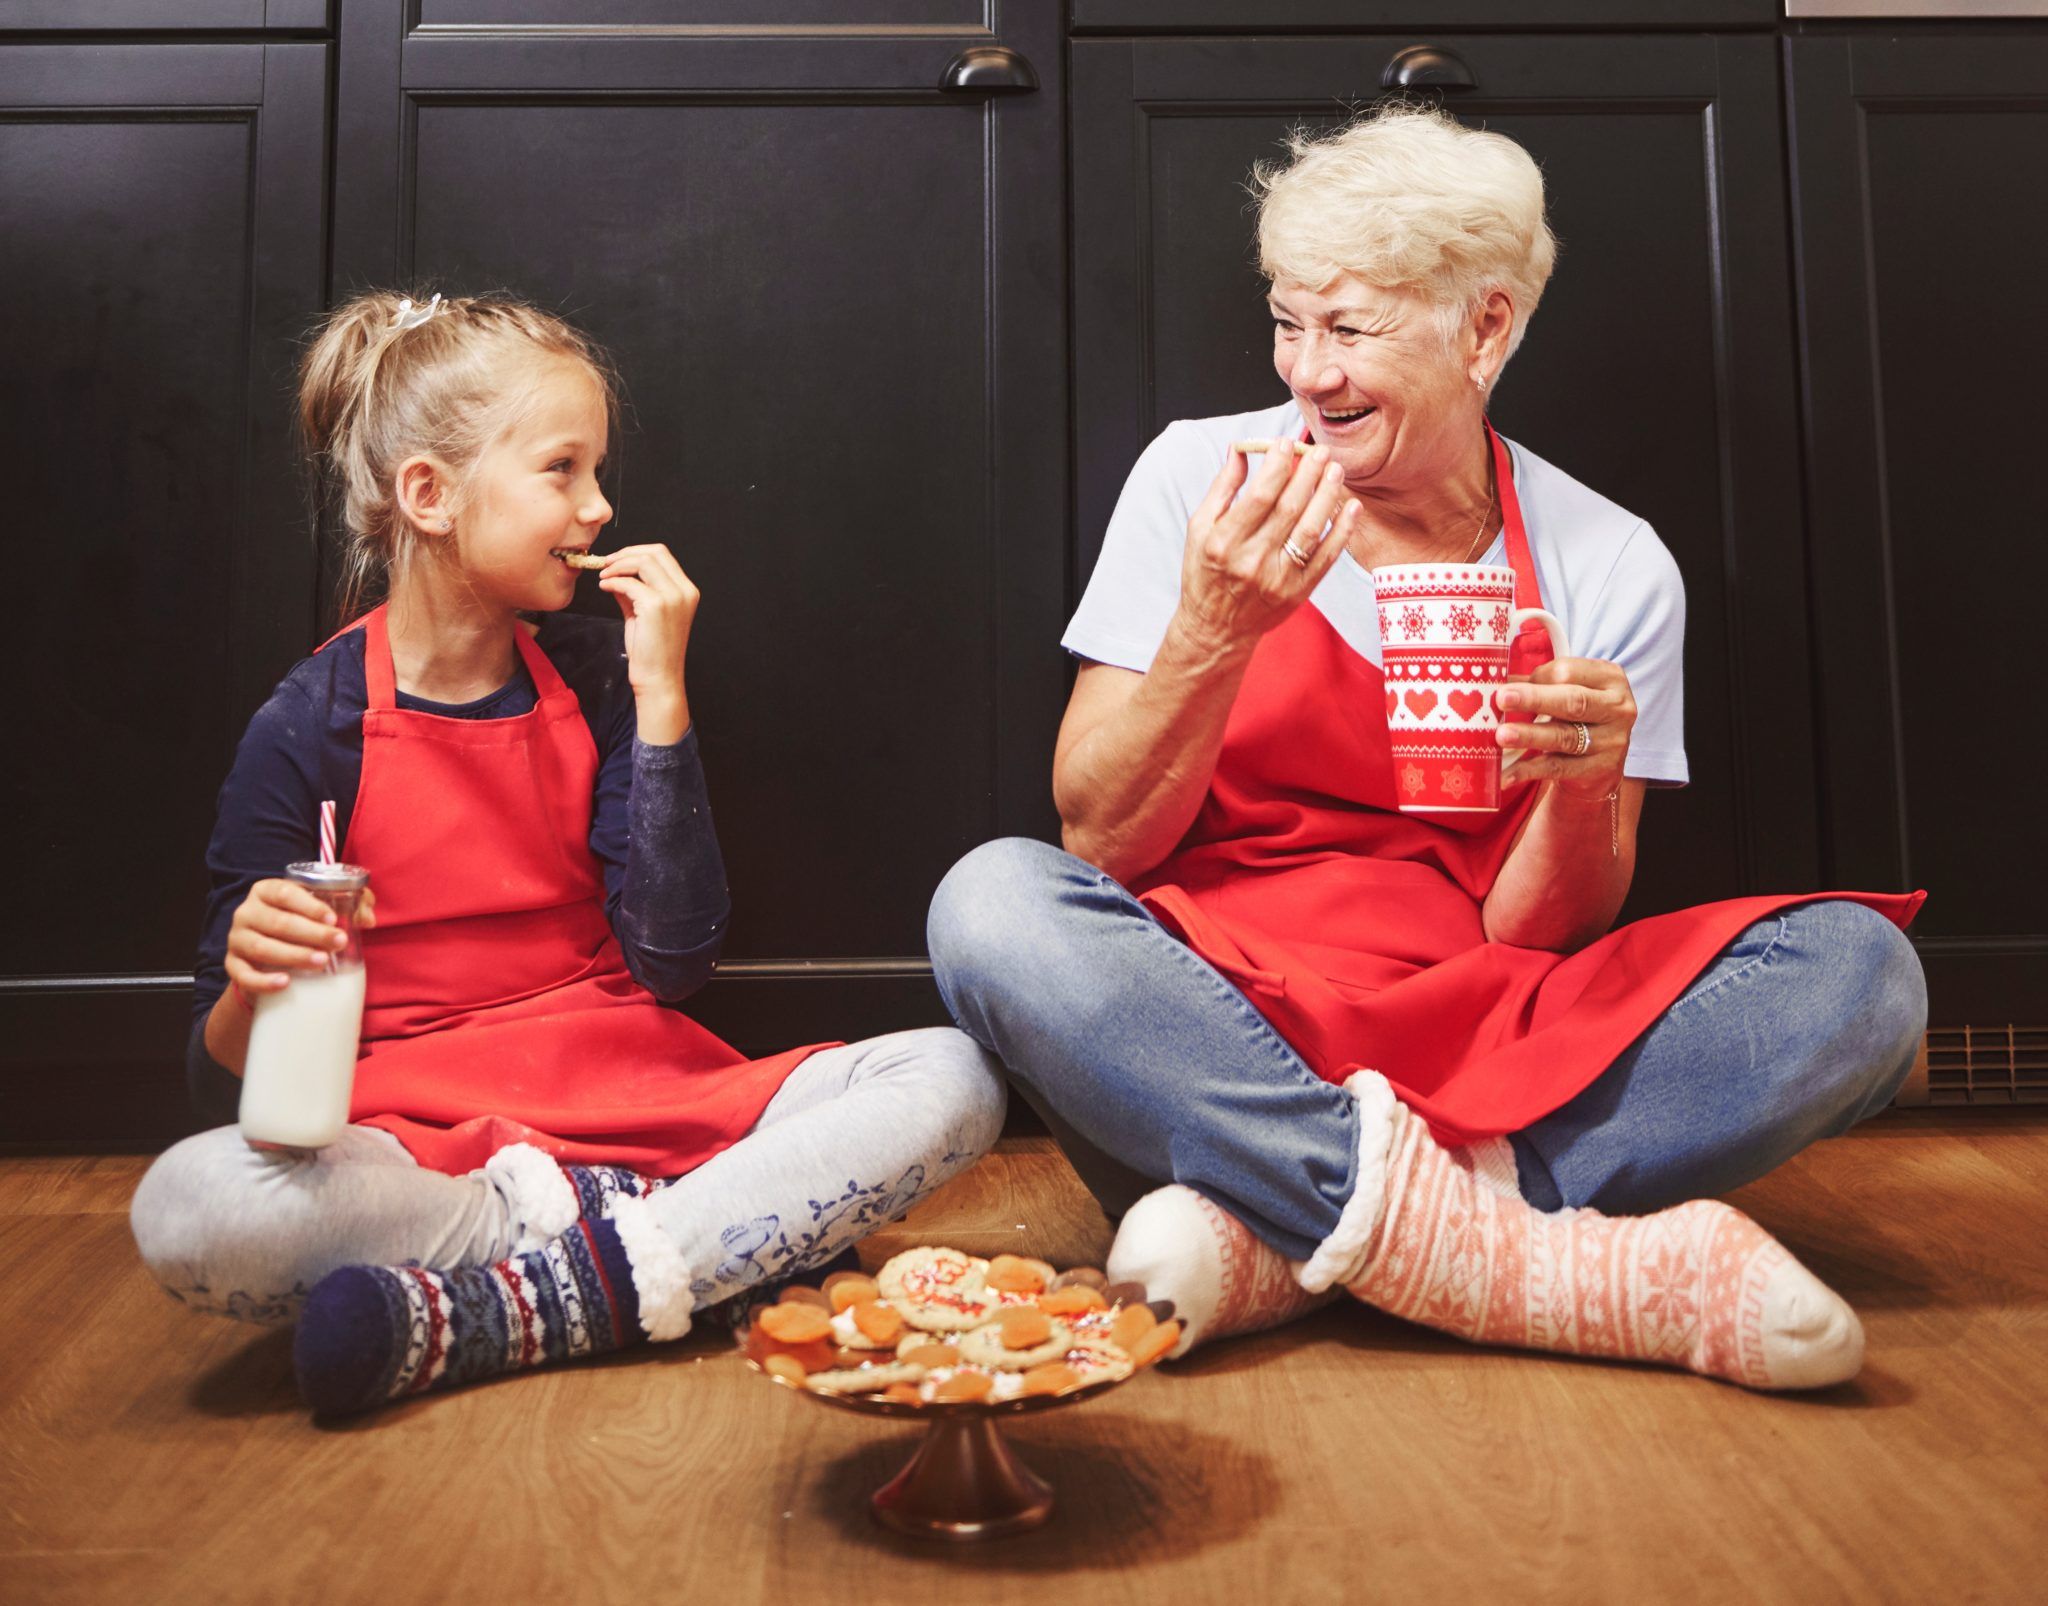 Girl and grandma eating Christmas cookies on the floor